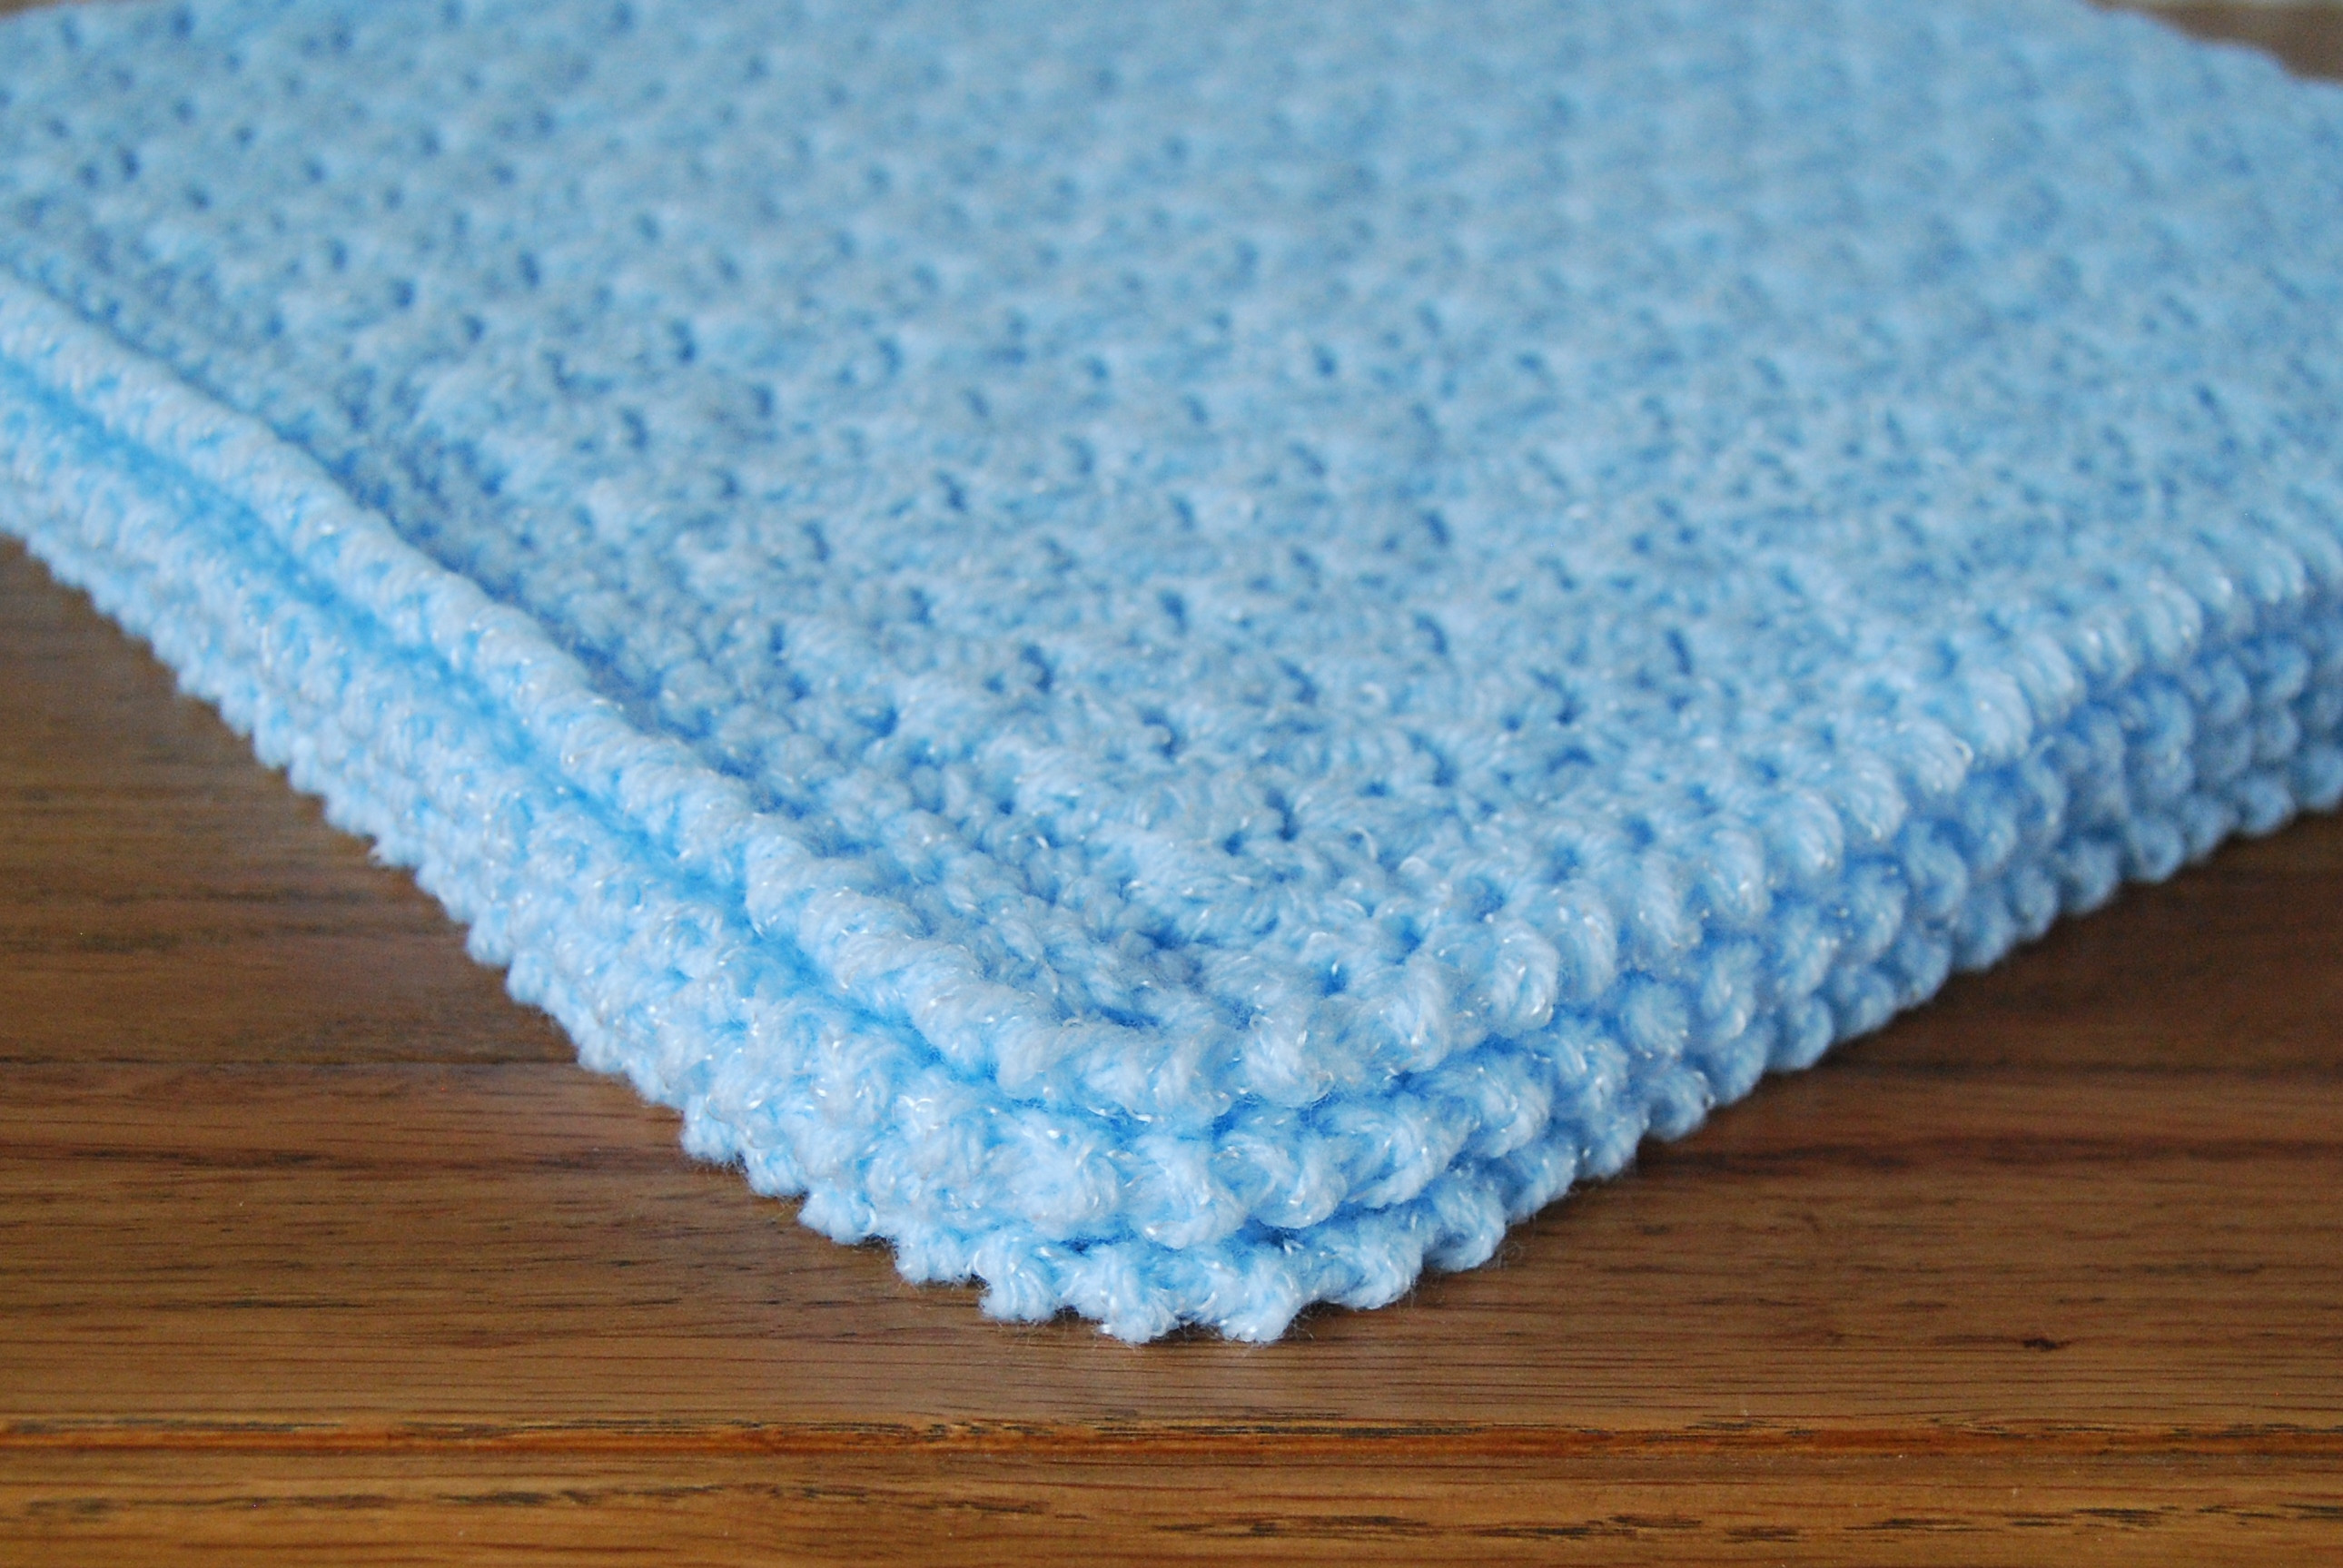 Baby Boy Crochet Blanket Patterns Lovely Beautiful Baby Boy Blanket Crochet Pattern for Pram Of Baby Boy Crochet Blanket Patterns Elegant Fiber Flux Beautiful Blankets 30 Free Crochet Blanket